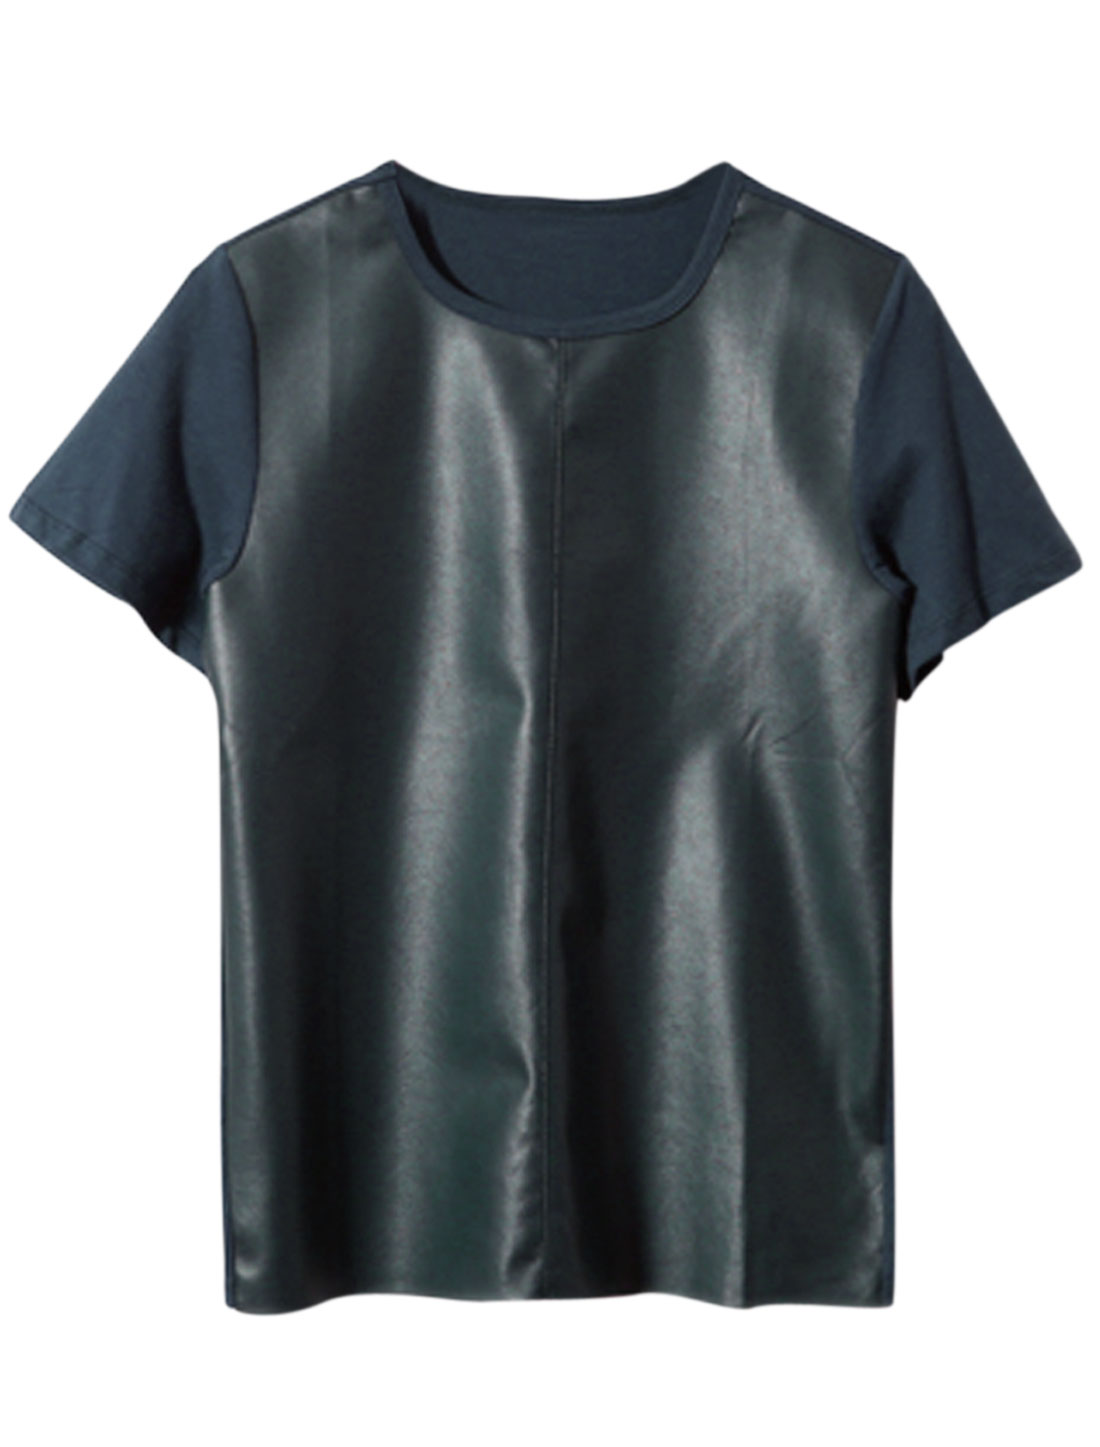 Men's Short Sleeve Round Neck Faux Leather Panel Casual T-Shirt Navy Blue S